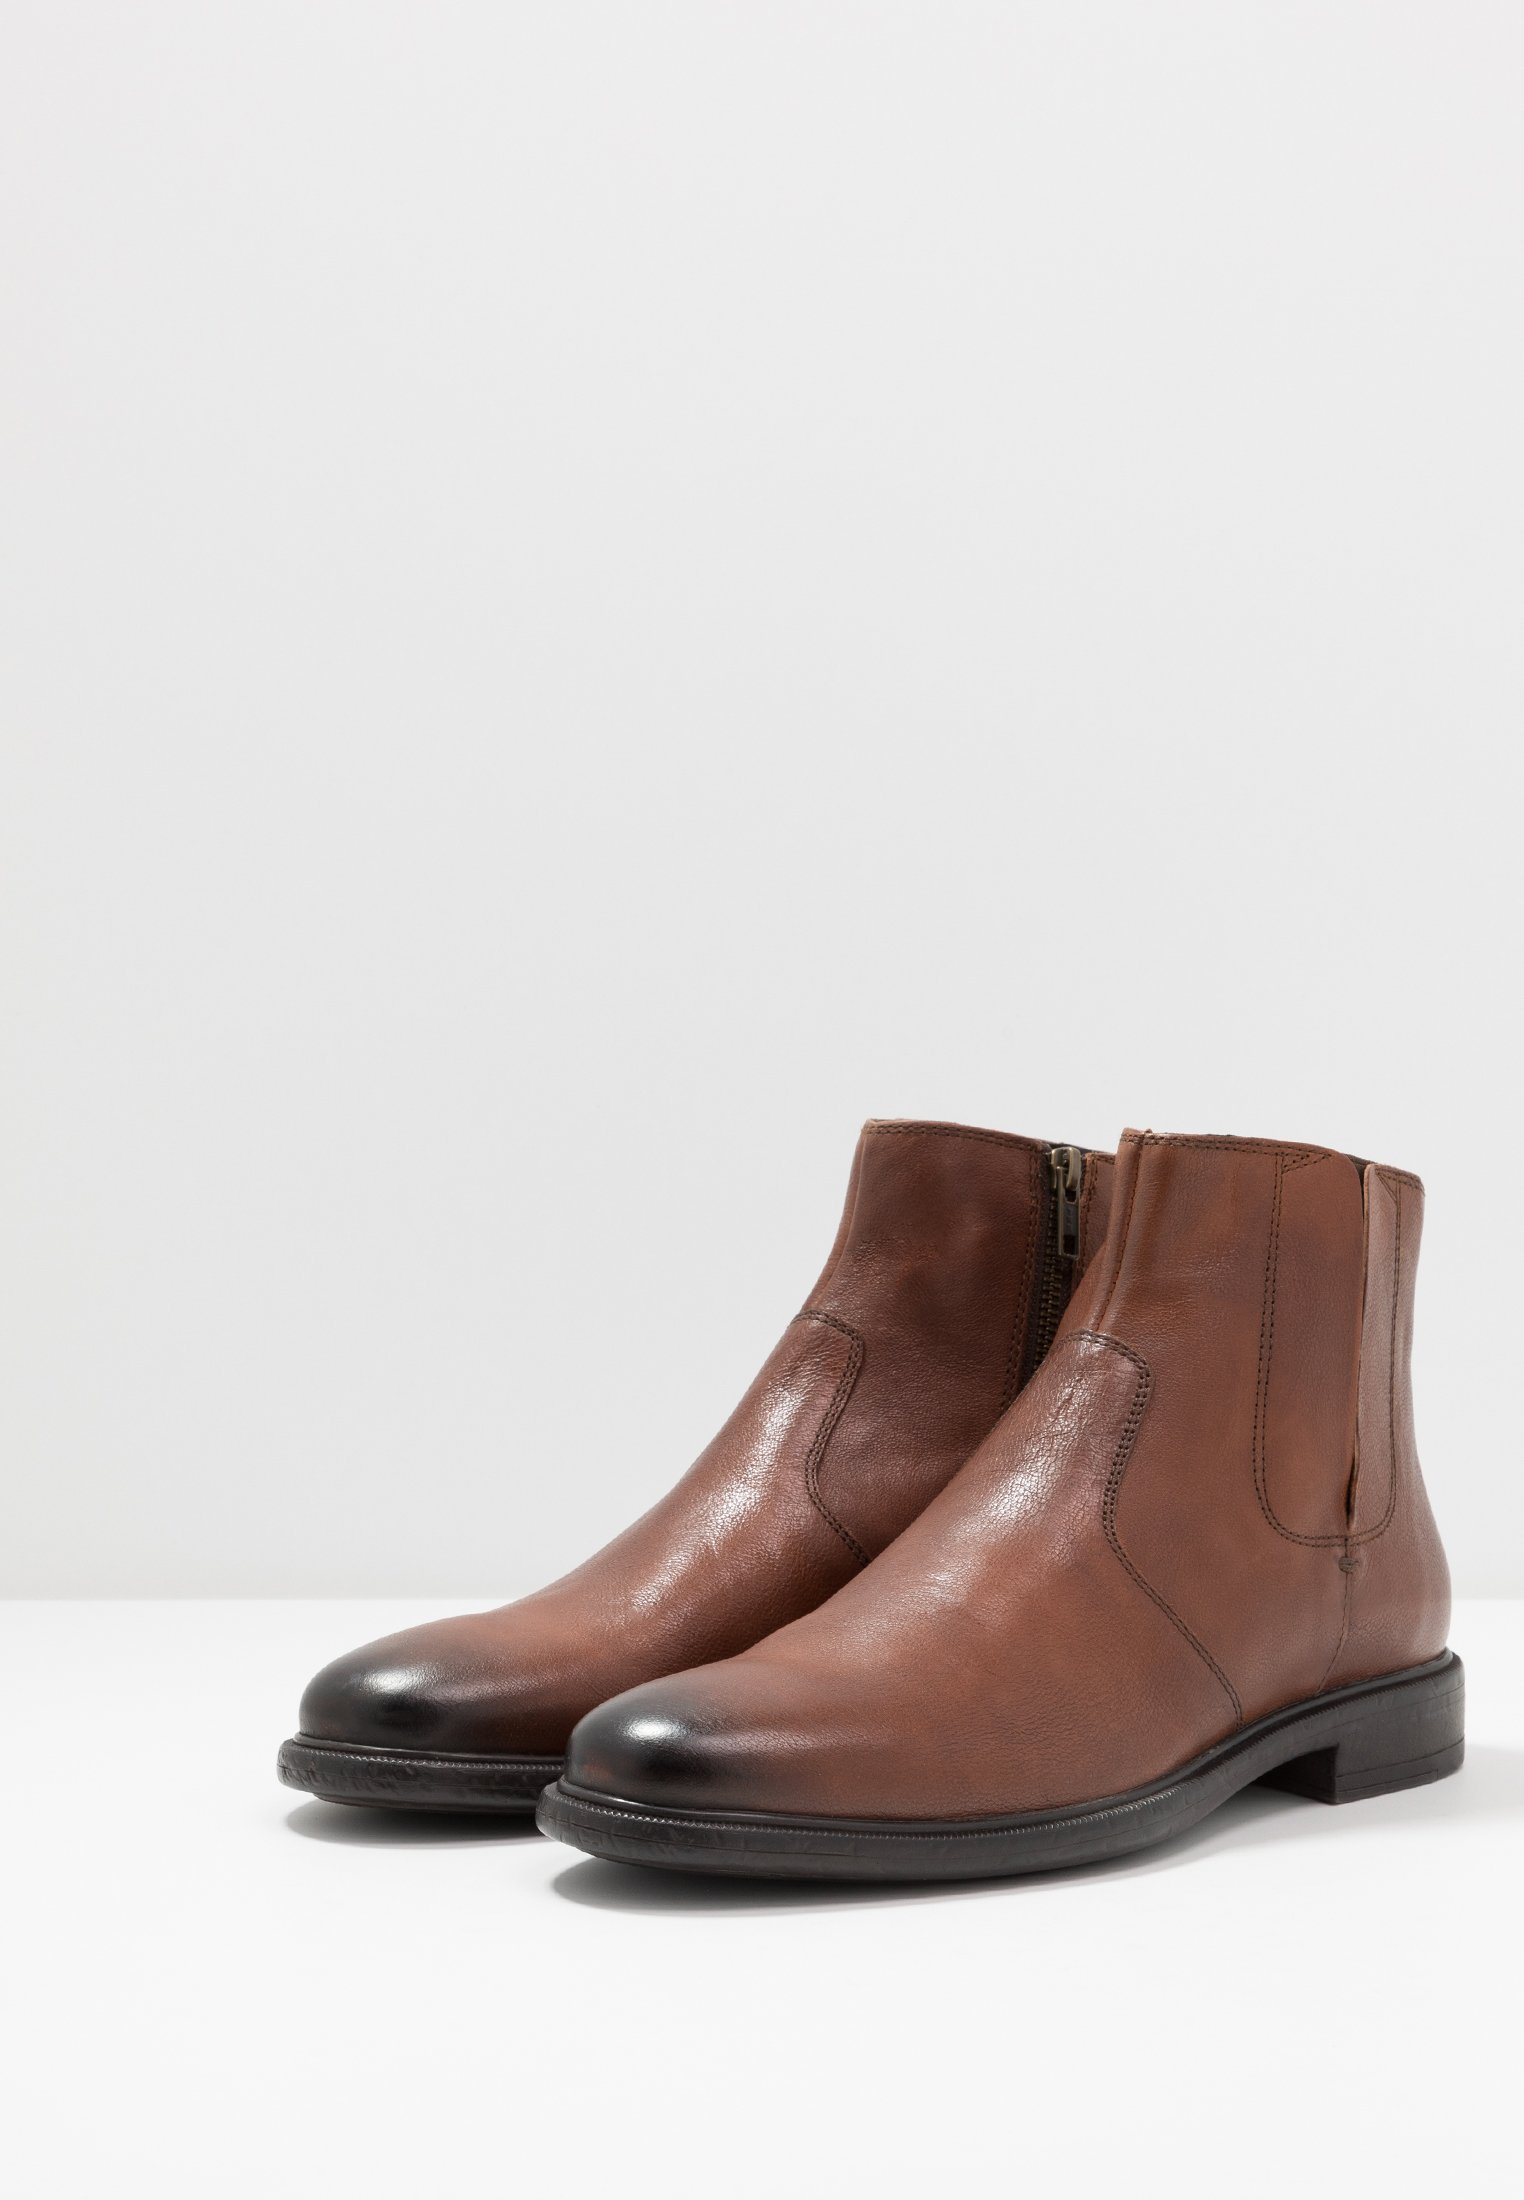 Geox Terence - Stiefelette Browncotto Black Friday